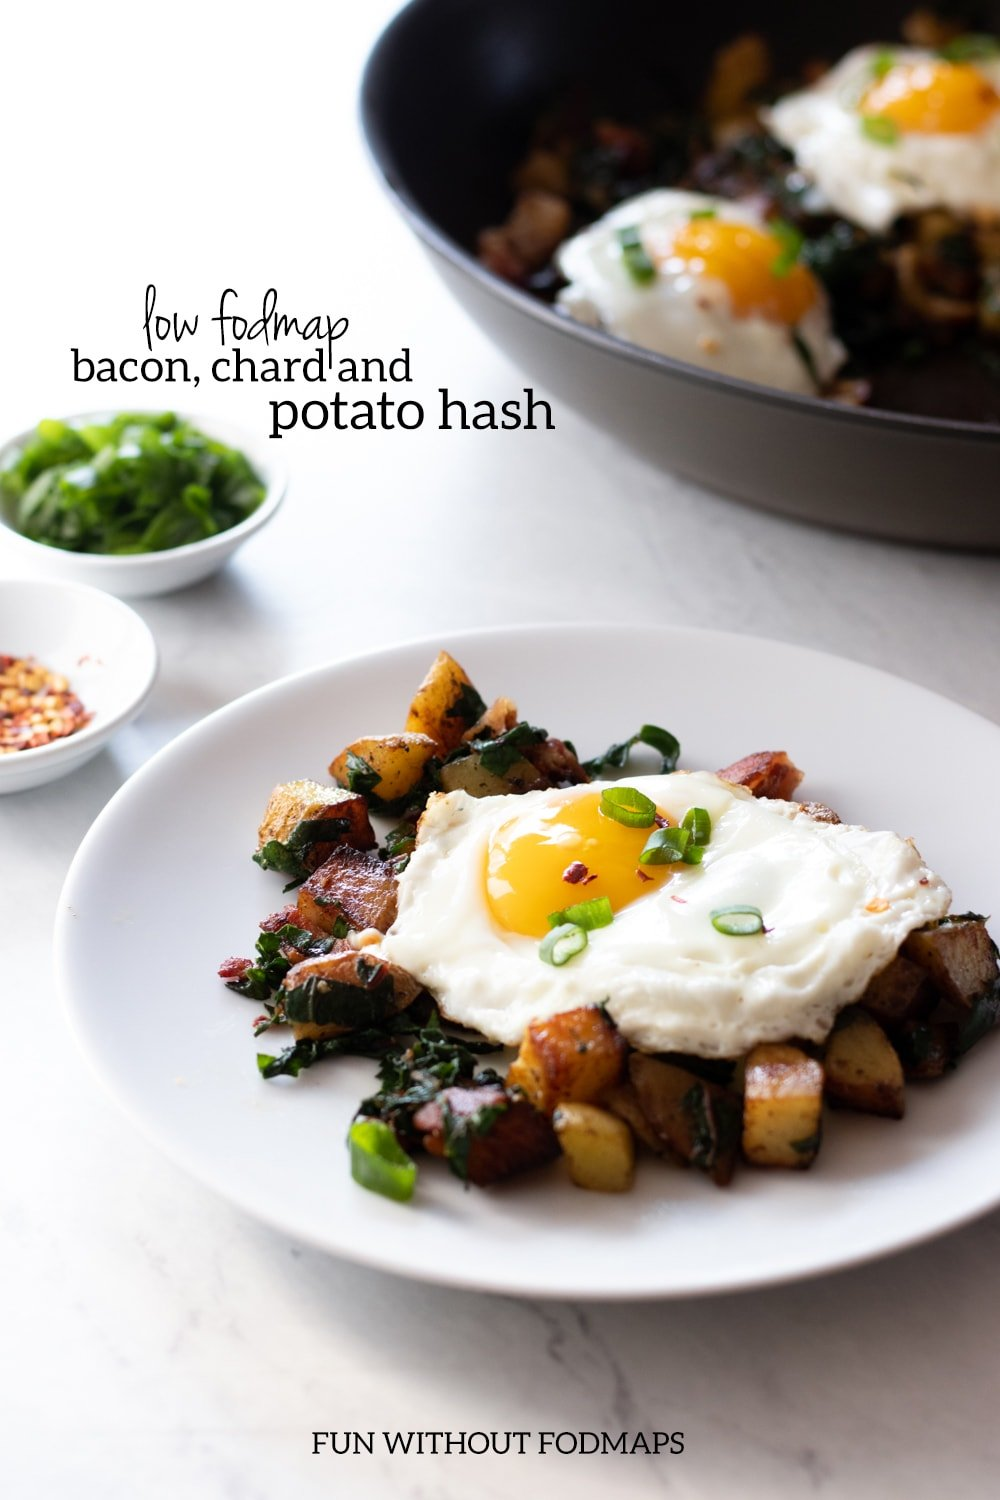 A close up of a plate of low FODMAP bacon, chard and potato hash.